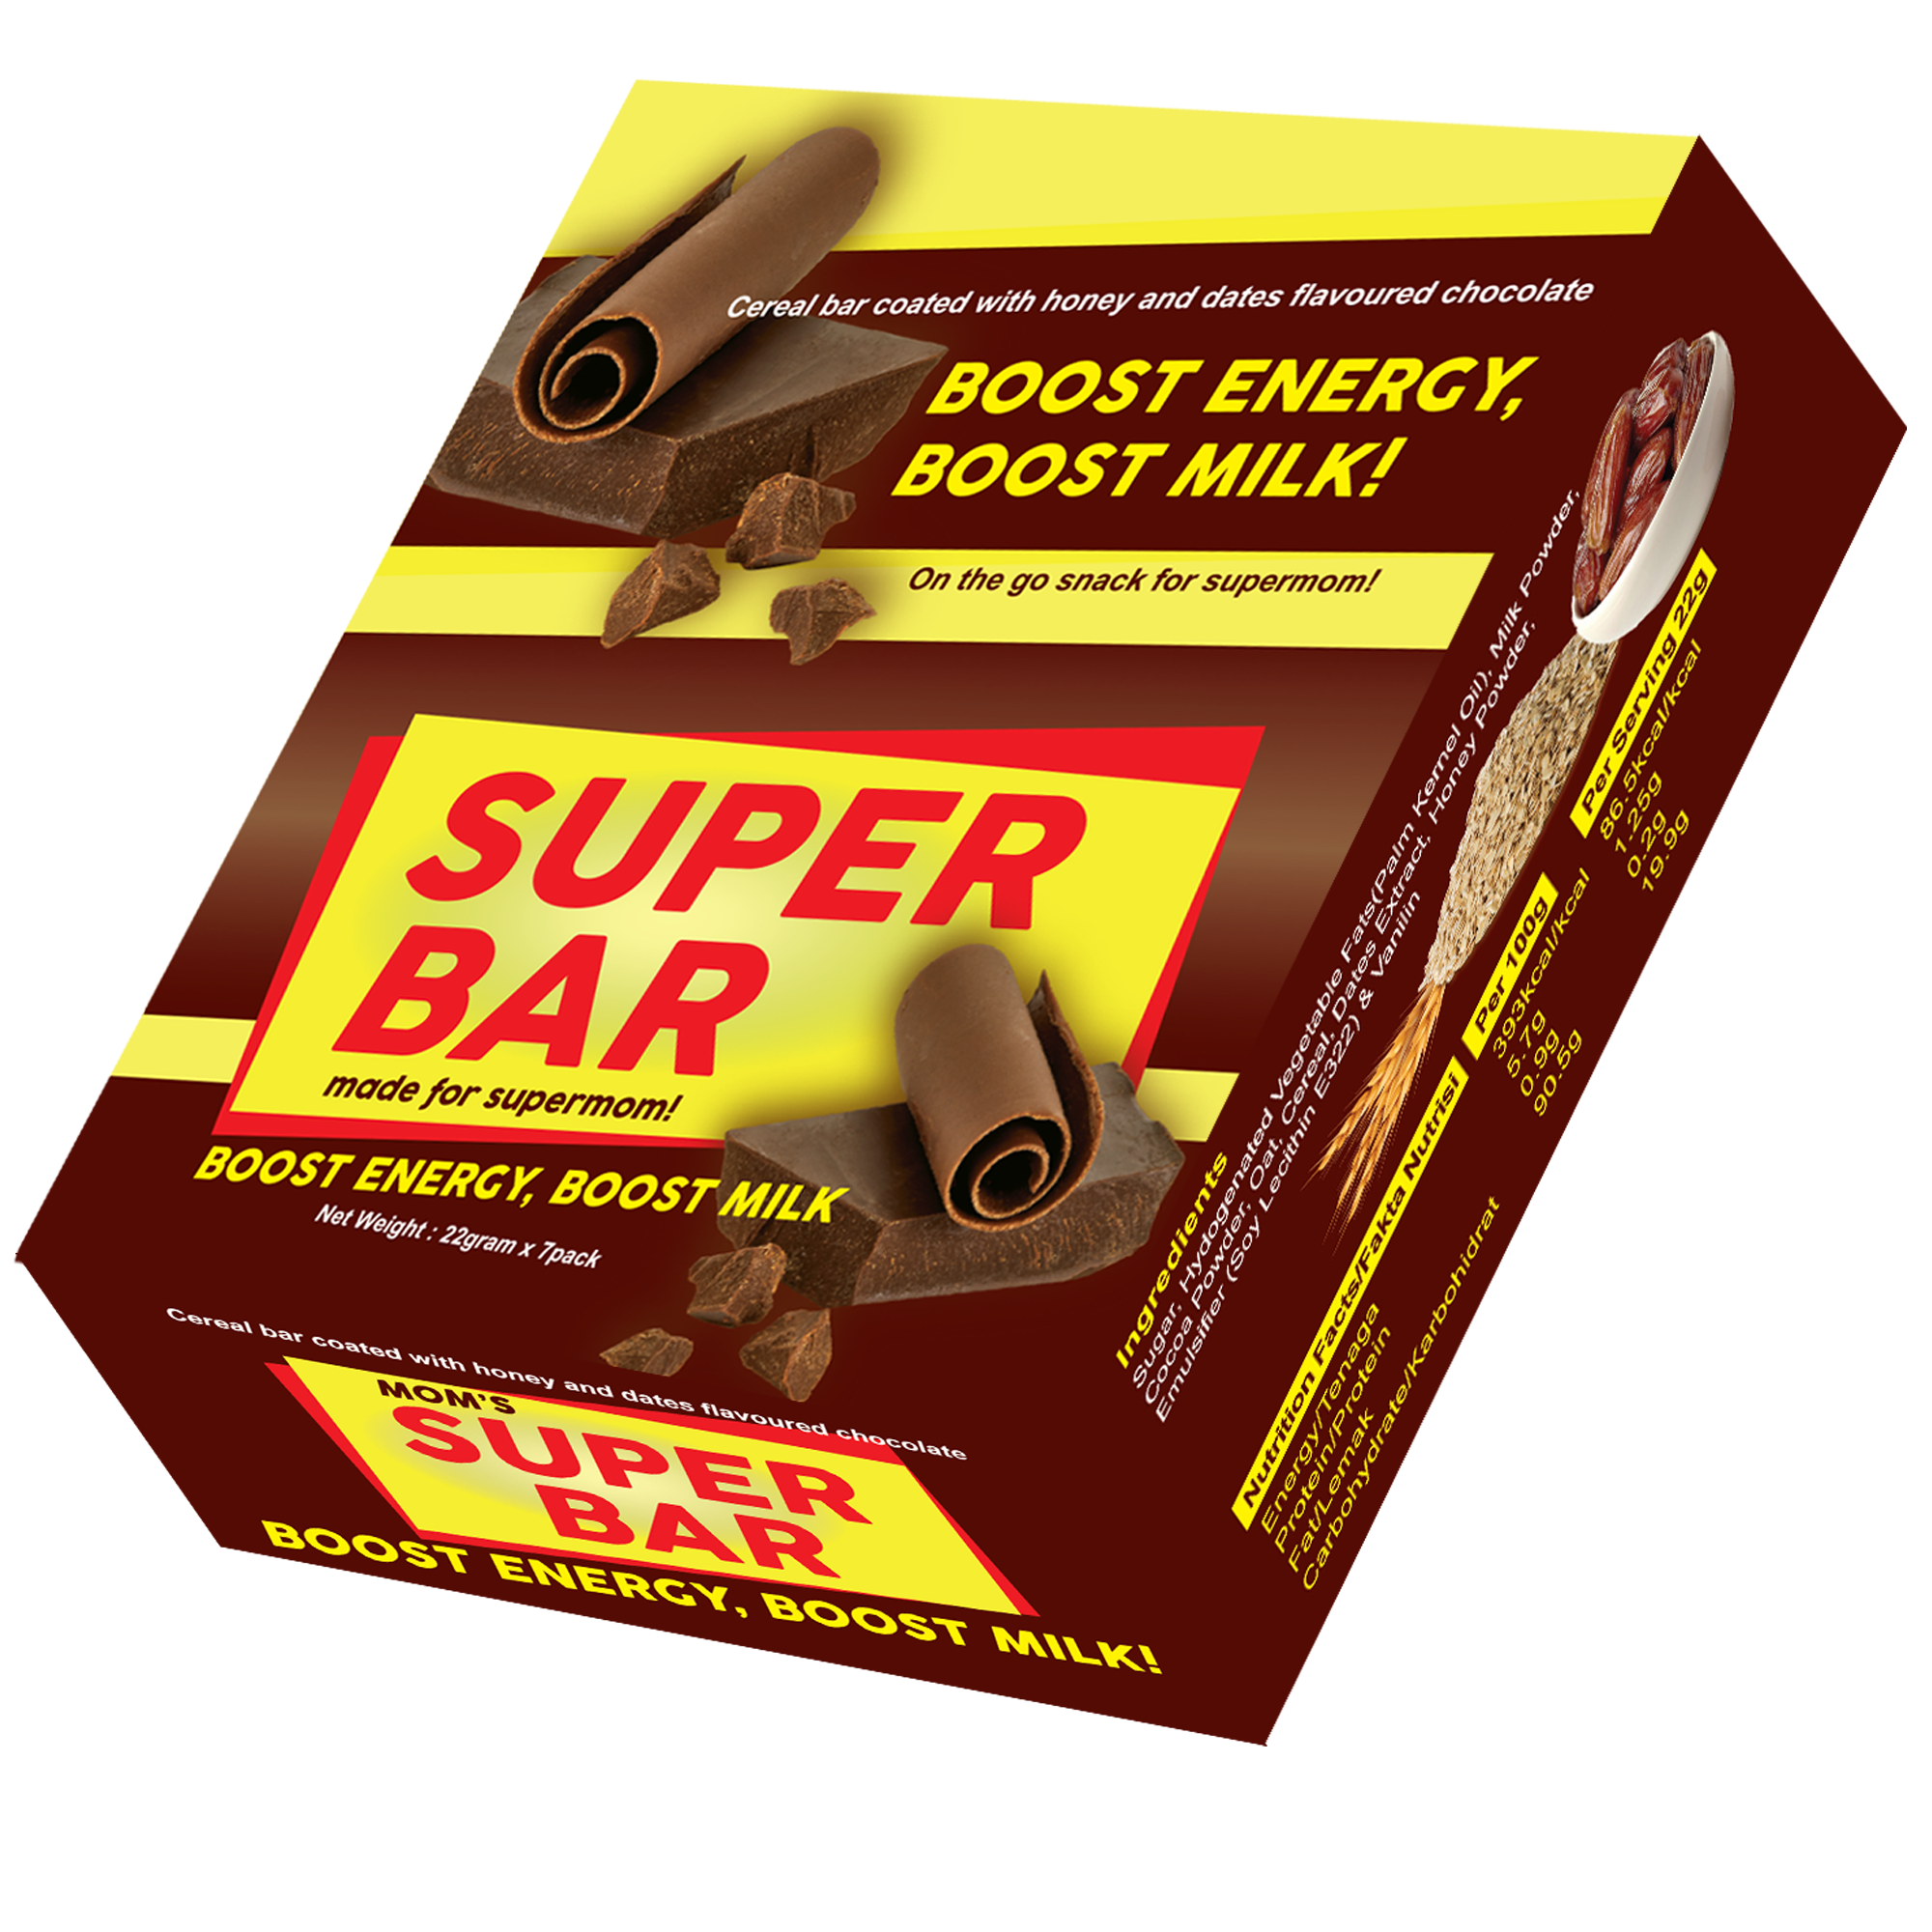 Mom's Super Bar Milk Booster